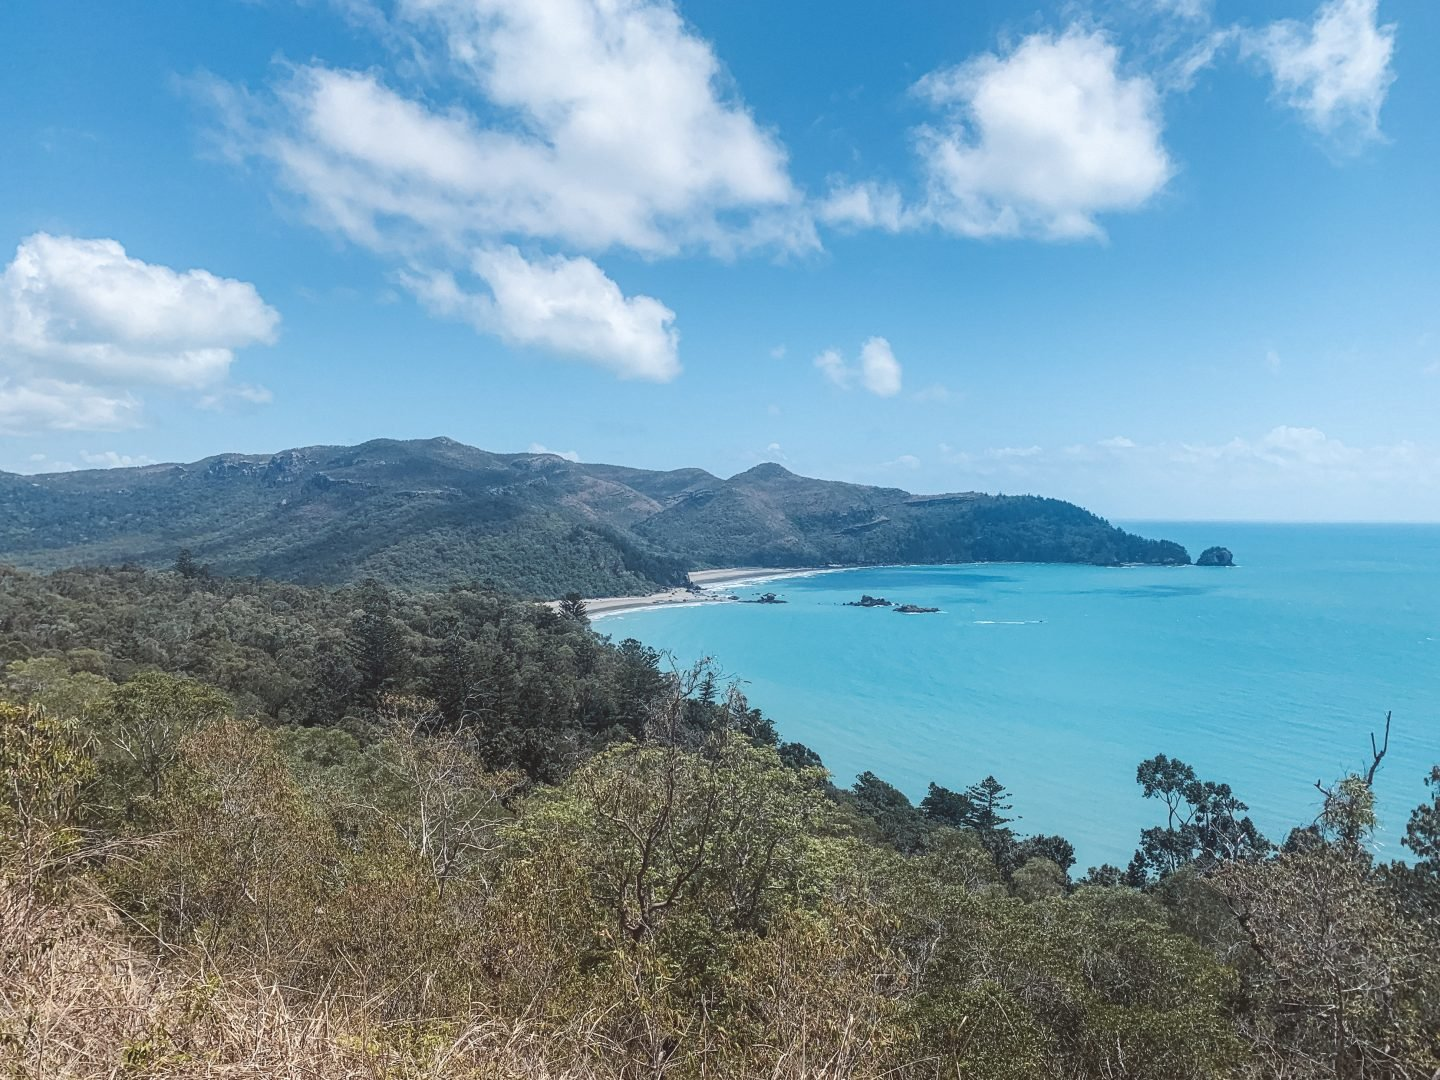 Cape Hillsborough National Park, The perfect place to do some walks